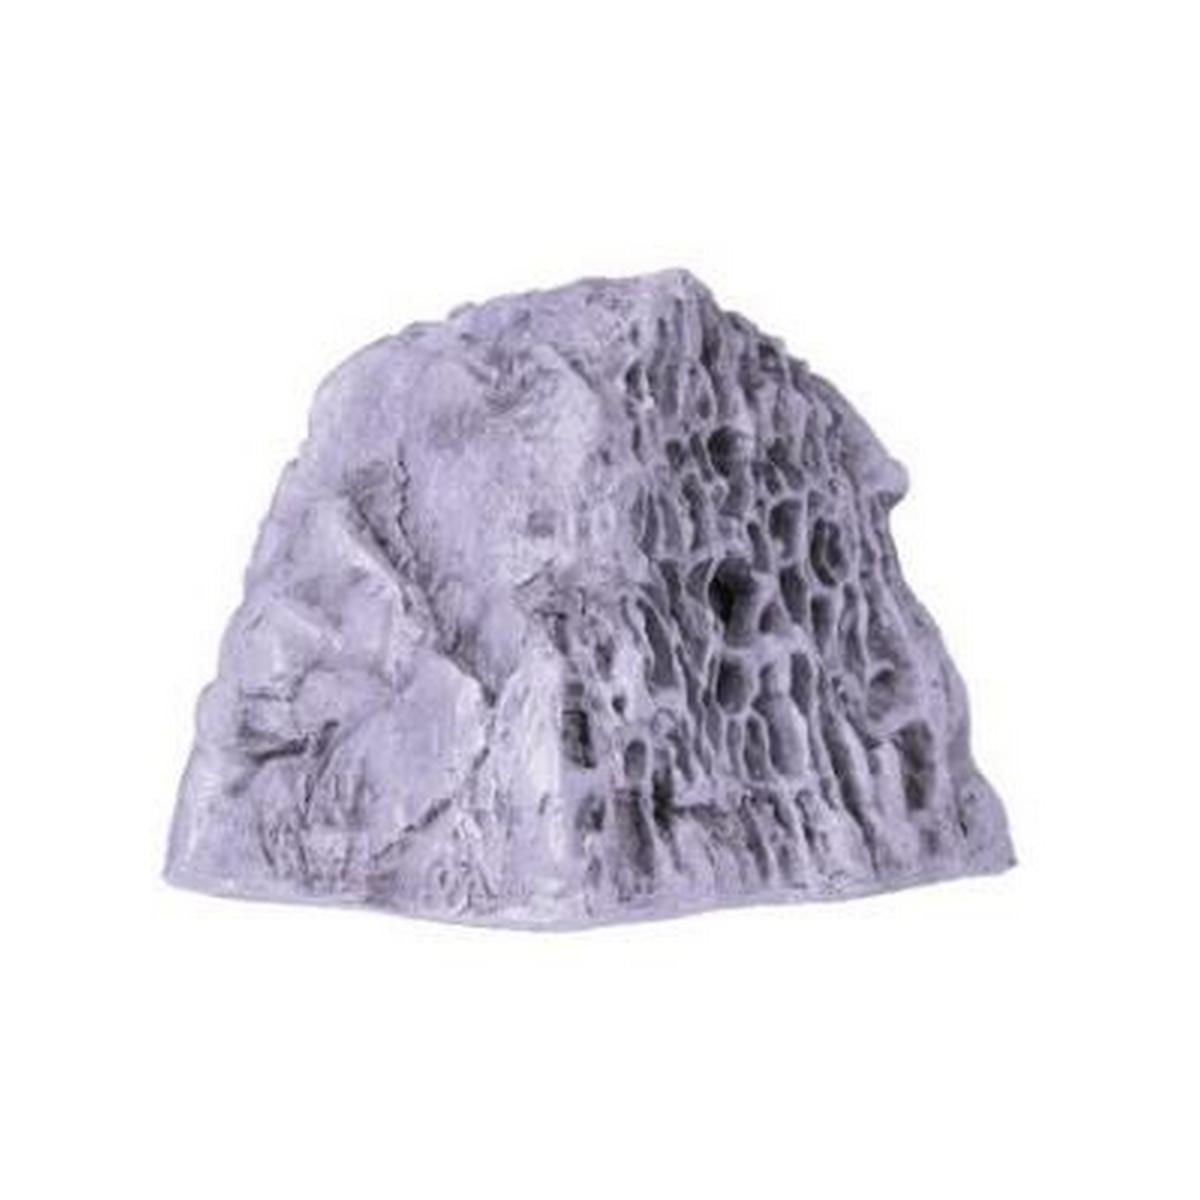 Rockustic Pavarocci with the exotic look of weathered sedimentary rock, this 2-way, 70 watt . 8